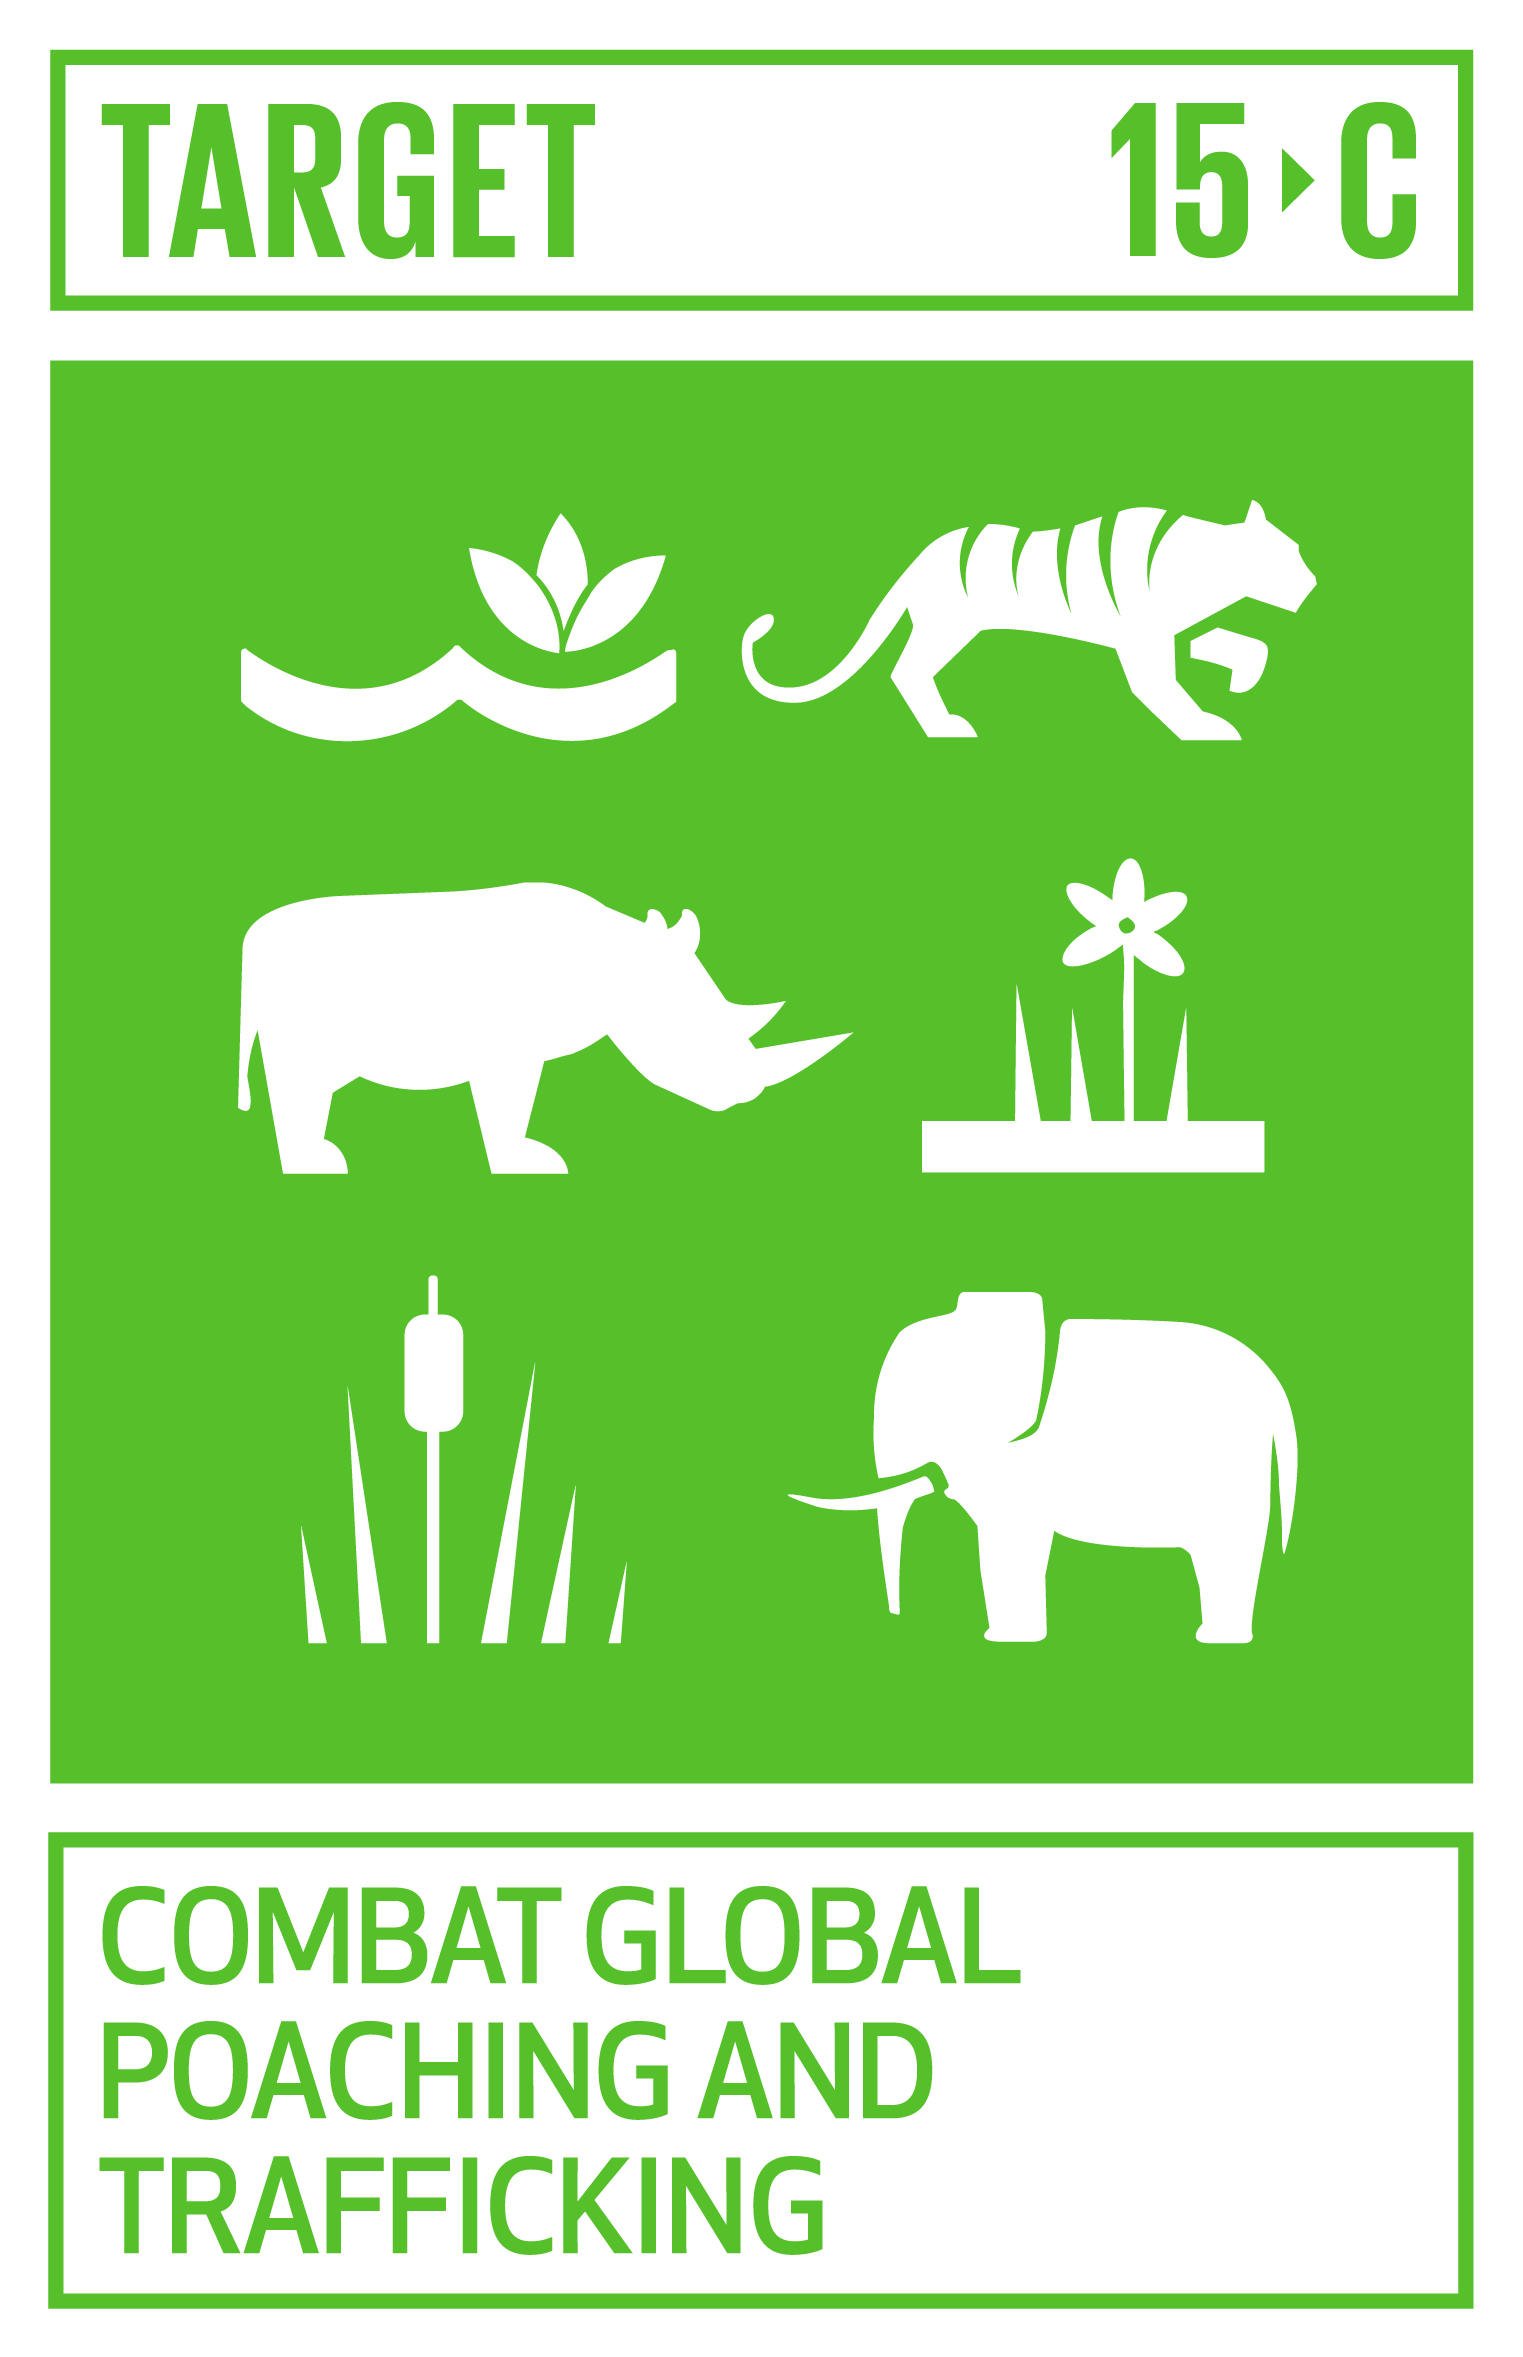 Enhance global support for efforts to combat poaching and trafficking of protected species, including by increasing the capacity of local communities to pursue sustainable livelihood opportunities.   INDICATOR    15.c.1  Proportion of traded wildlife that was poached or illicitly trafficked